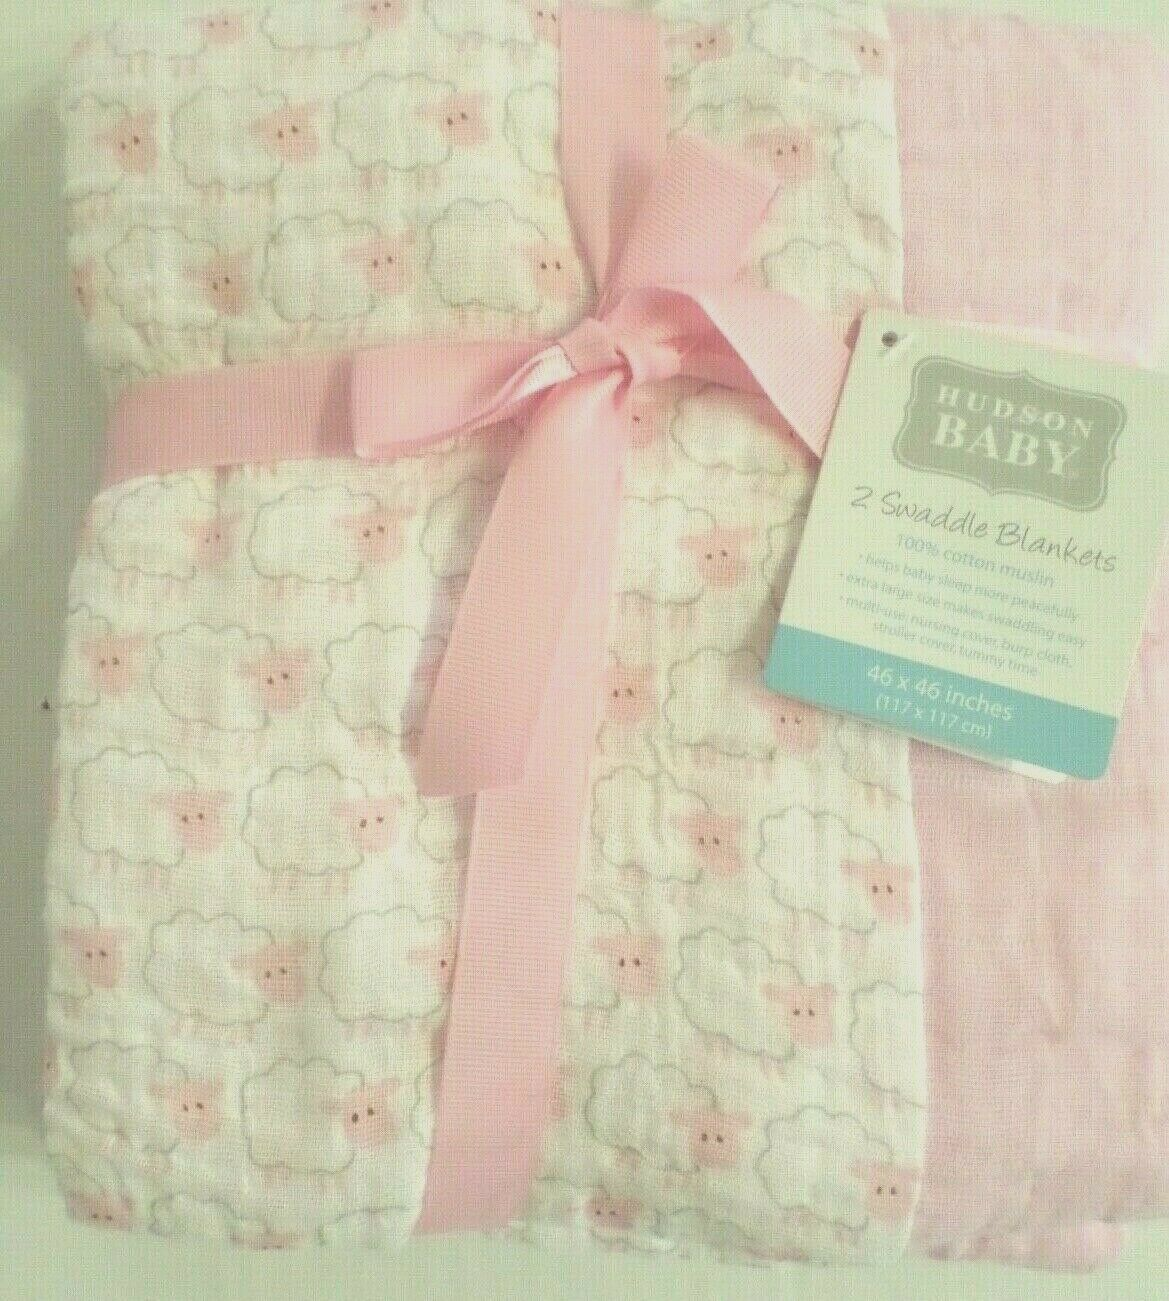 Hudson Baby Muslin Swaddle Blankets, 2 Pack, Pink